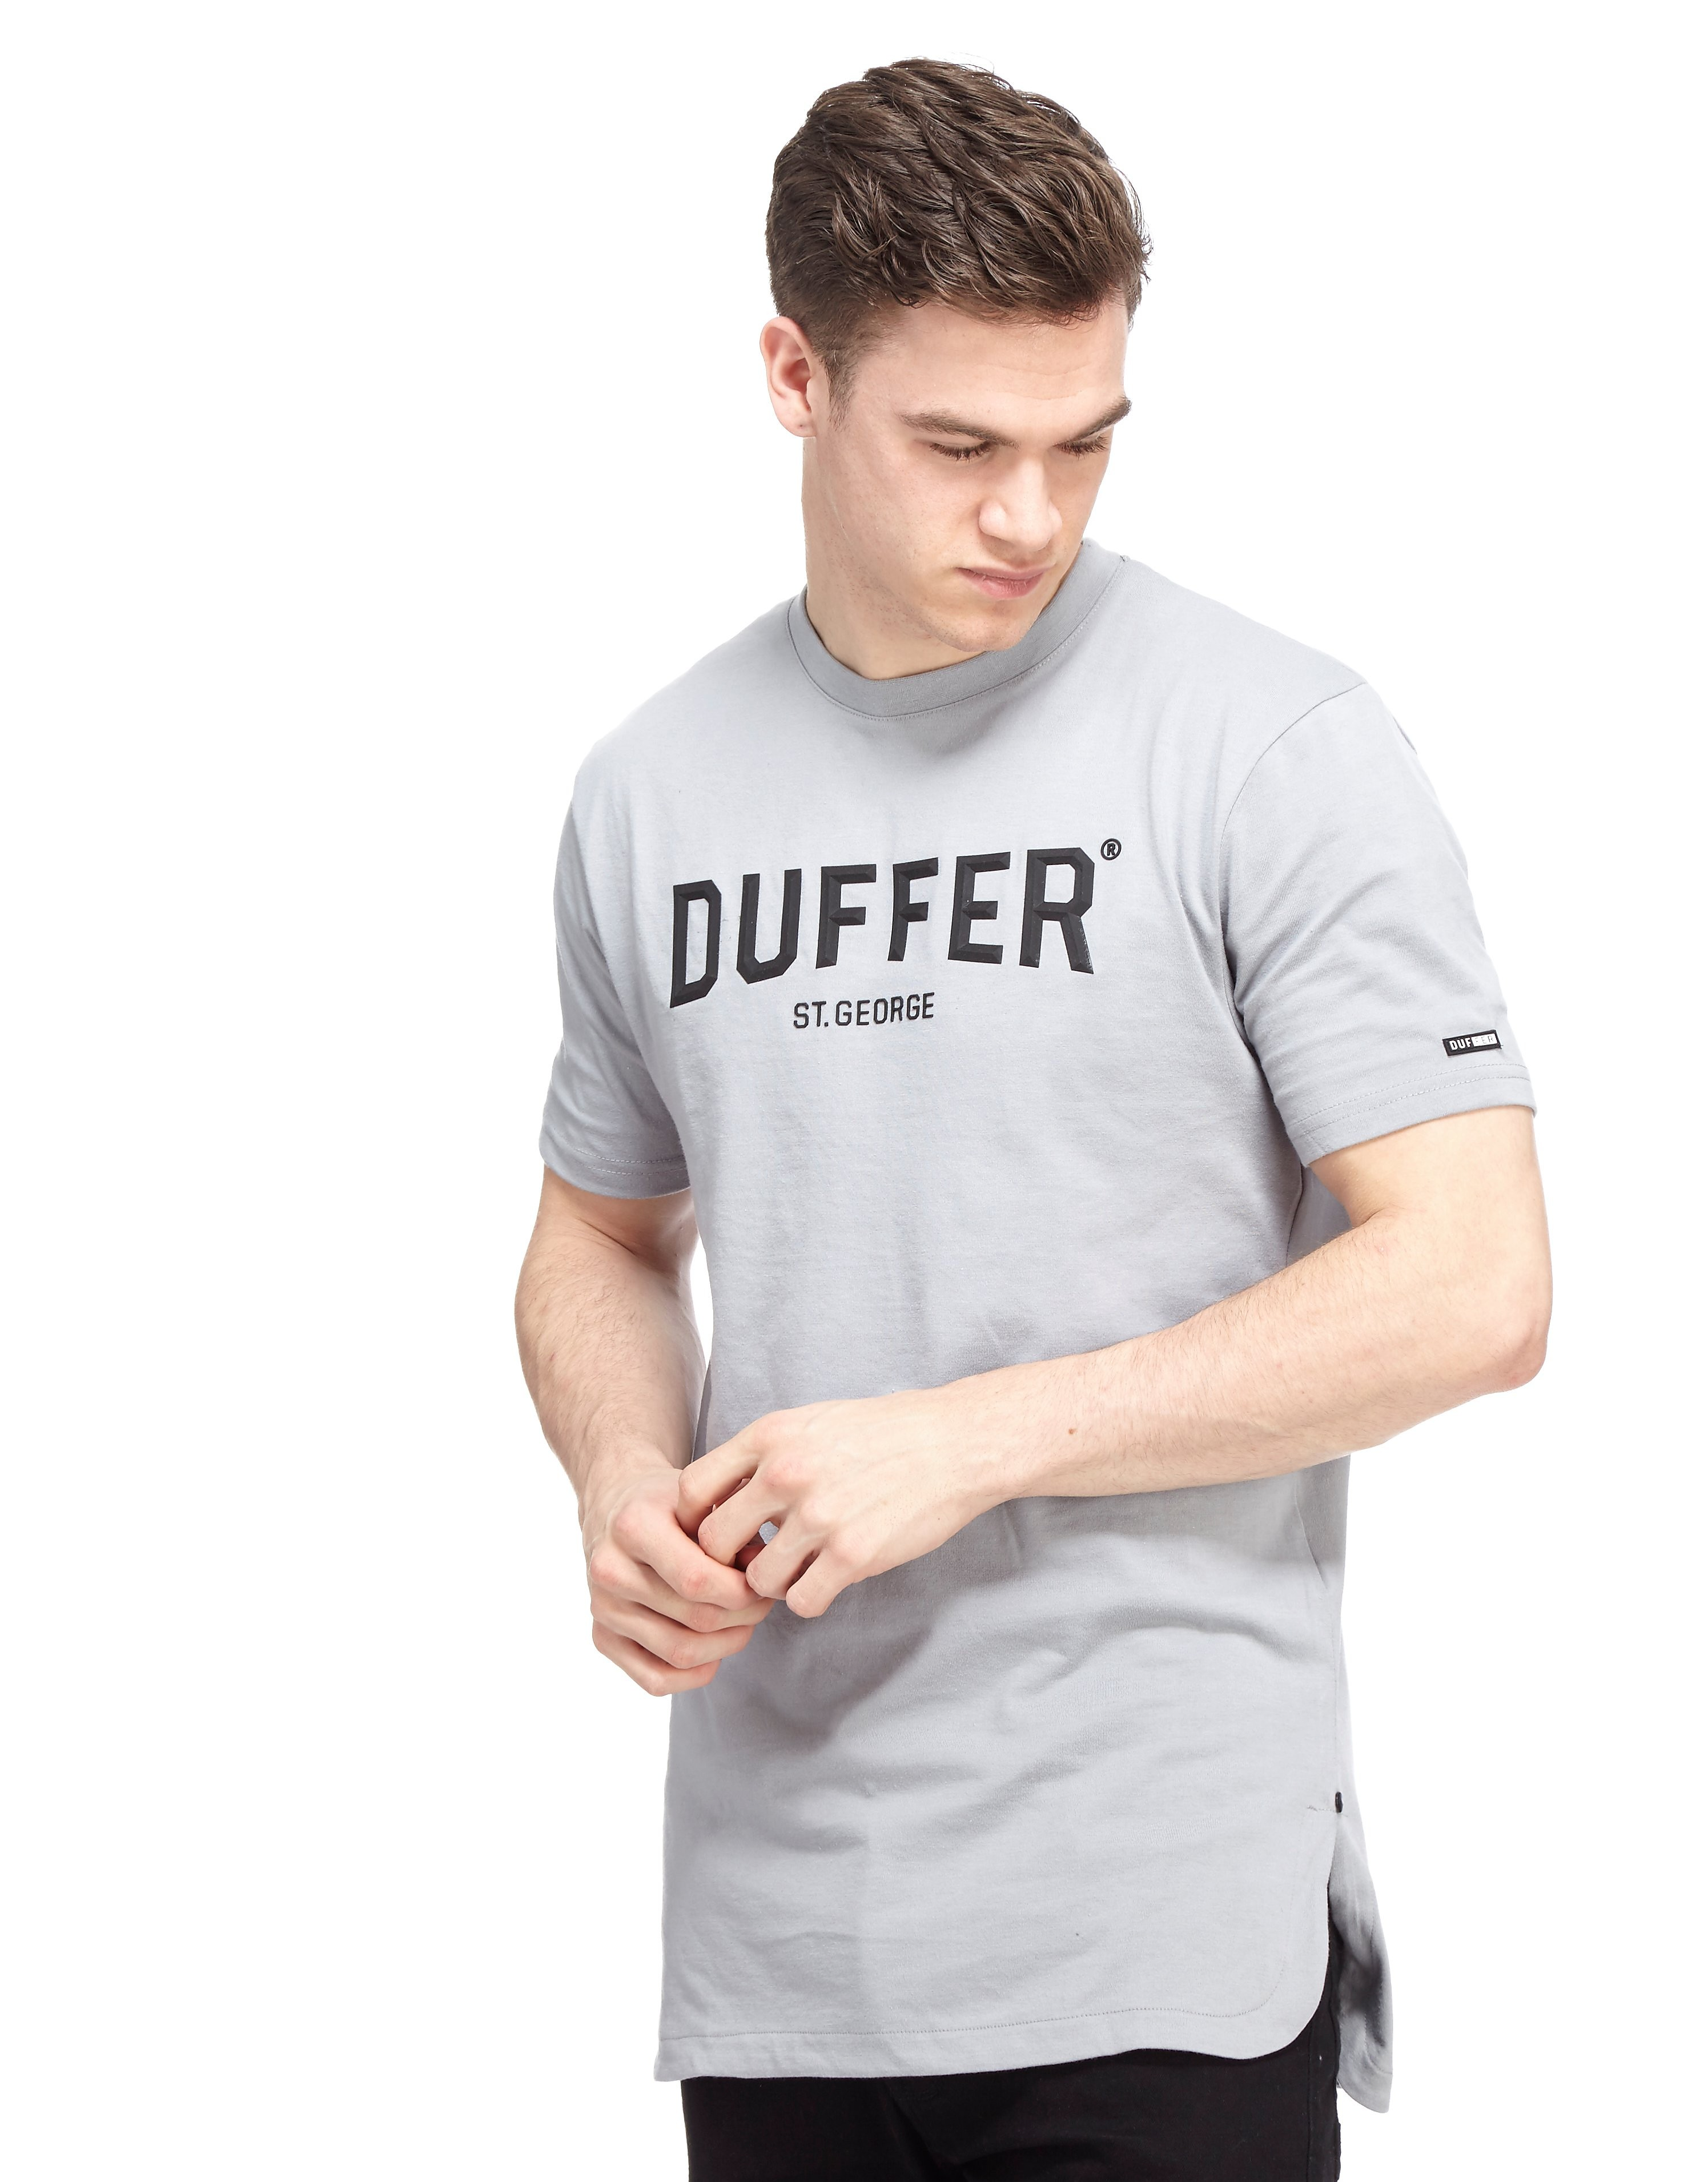 Duffer of St George Substance T-Shirt